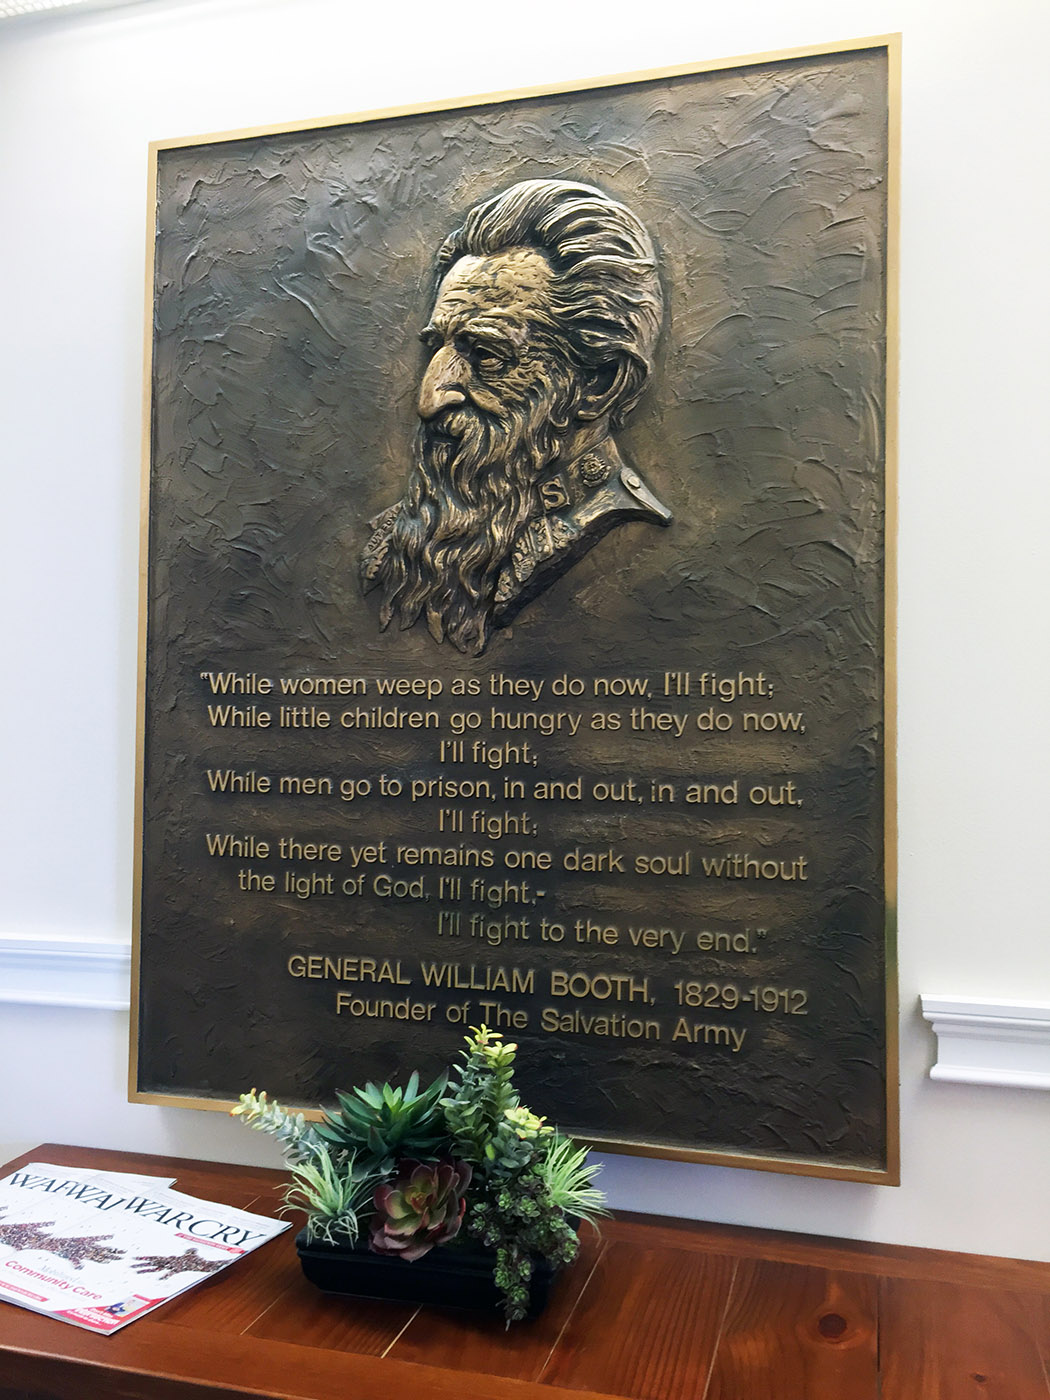 William Booth - Founder